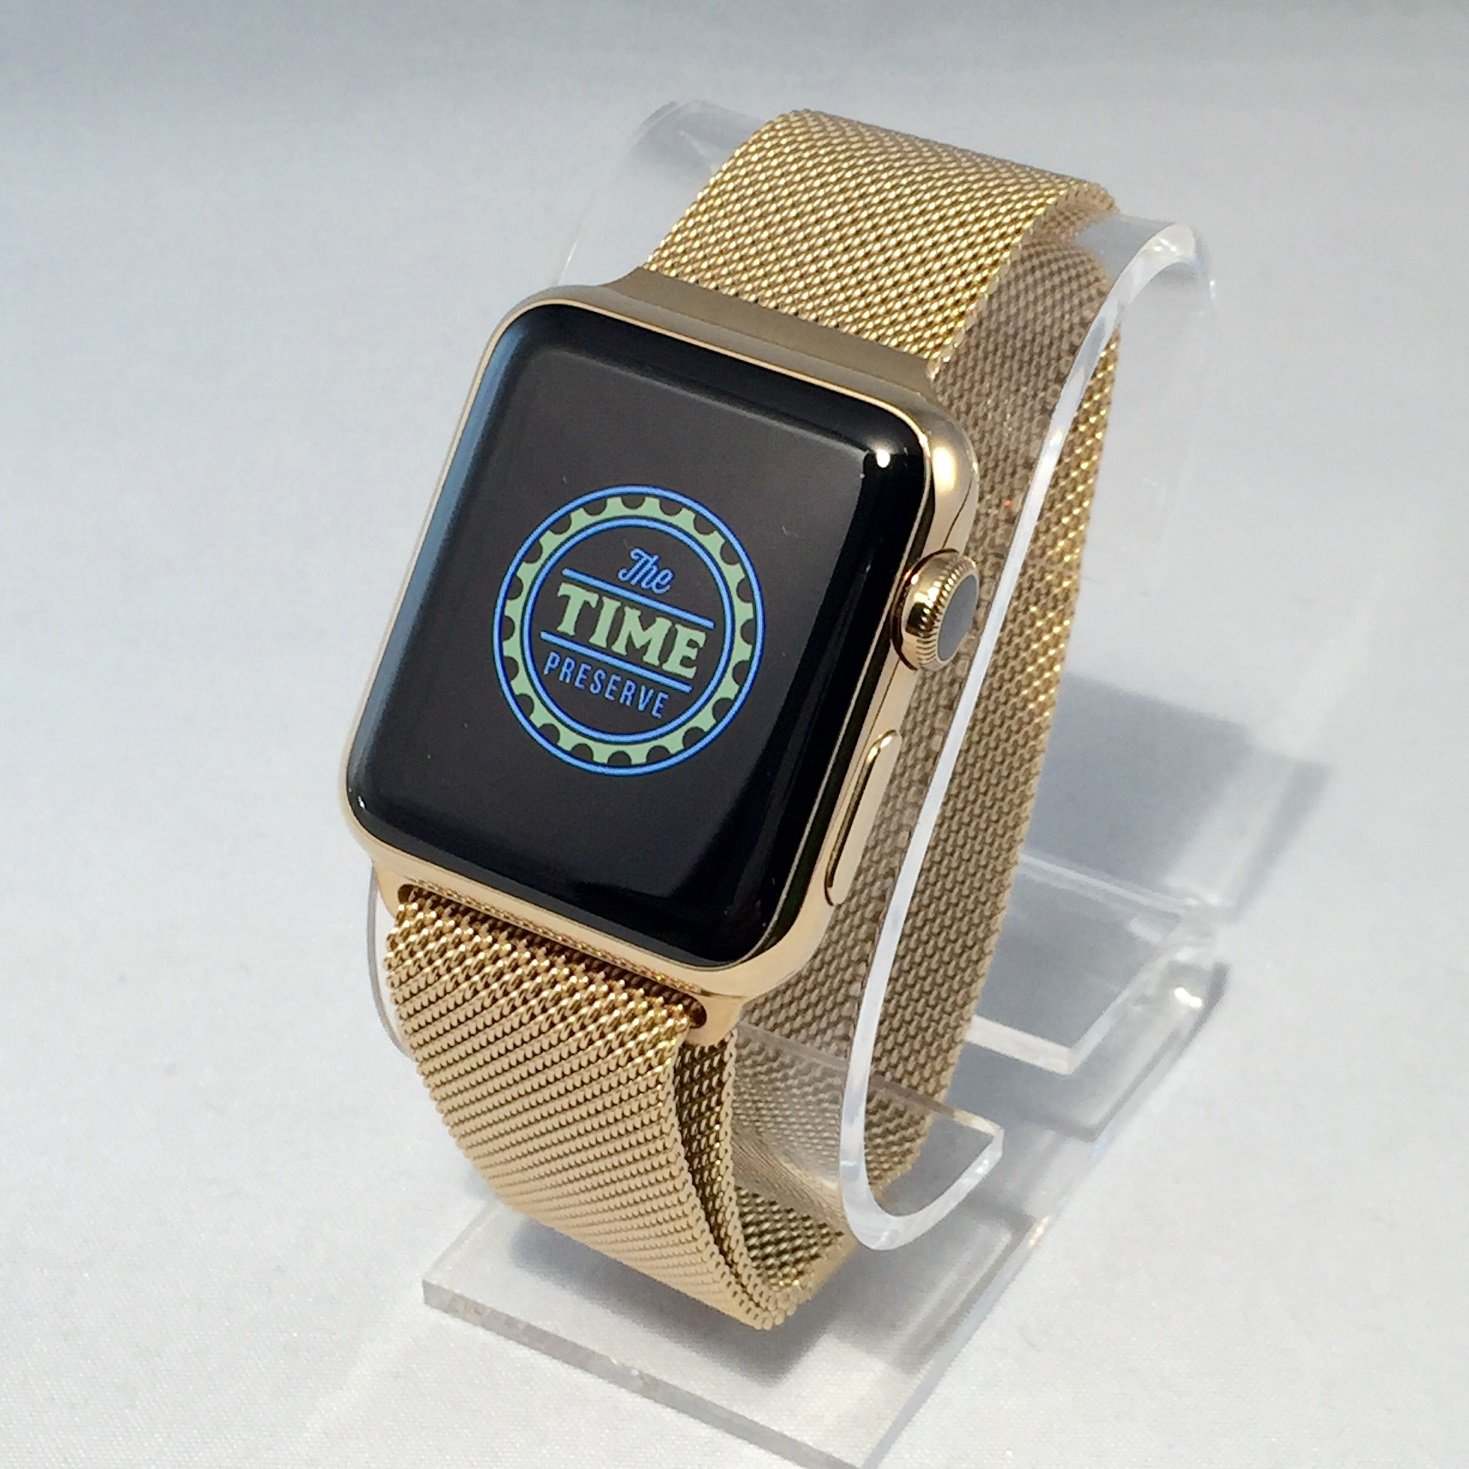 Apple watch gold plated with milanese loop The Time Preserve